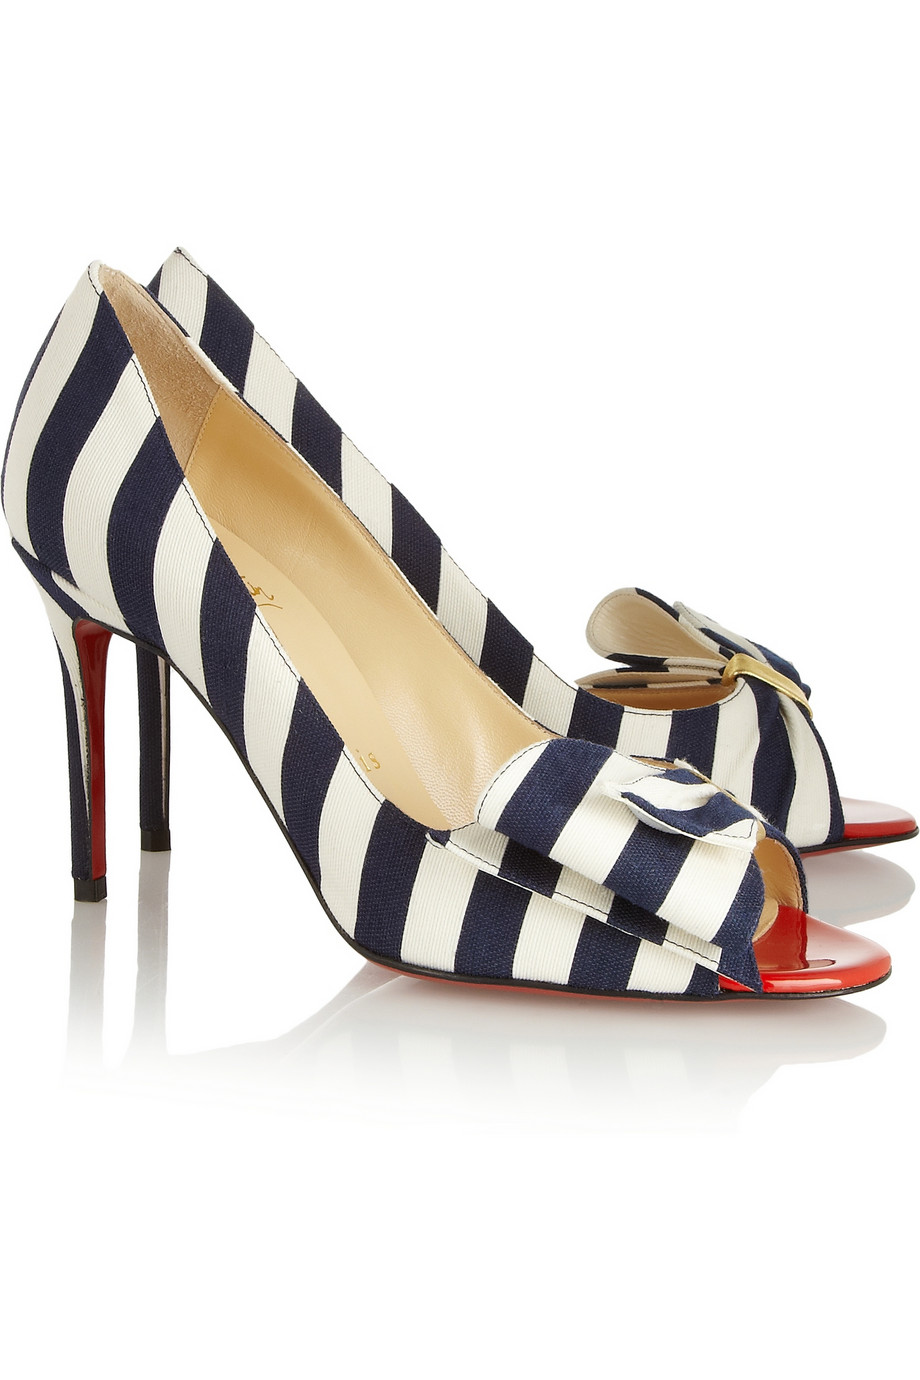 94eb04507c66 Lyst - Christian Louboutin Just Soon 85 Striped Canvas Pumps in Blue